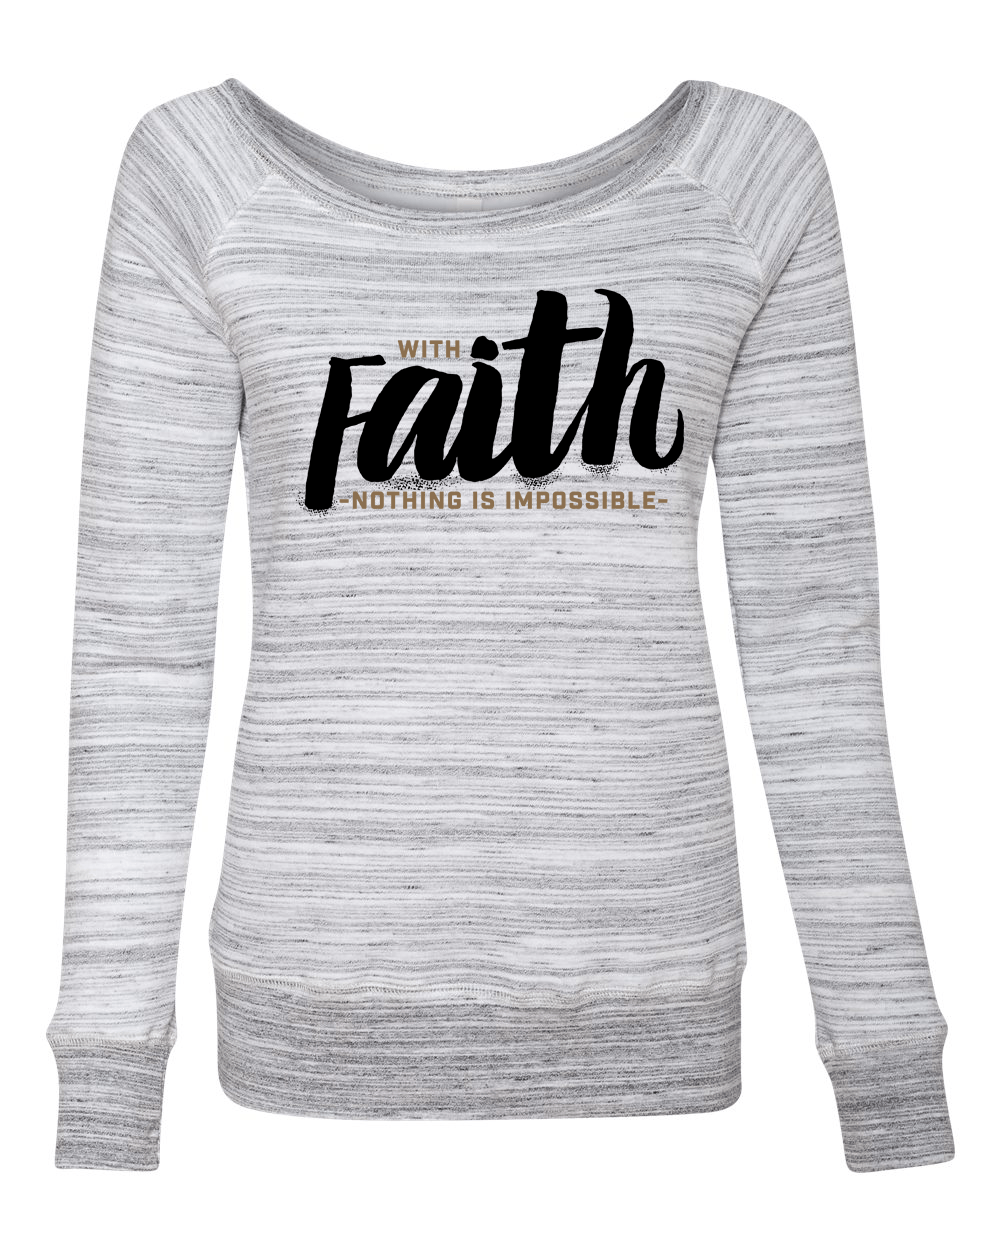 With Faith Long Sleeve (Wide Neck) Christian Sweatshirt - Small / Light Grey Marble - Christian T-Shirt | Christian Gifts | Christian Apparel - 1